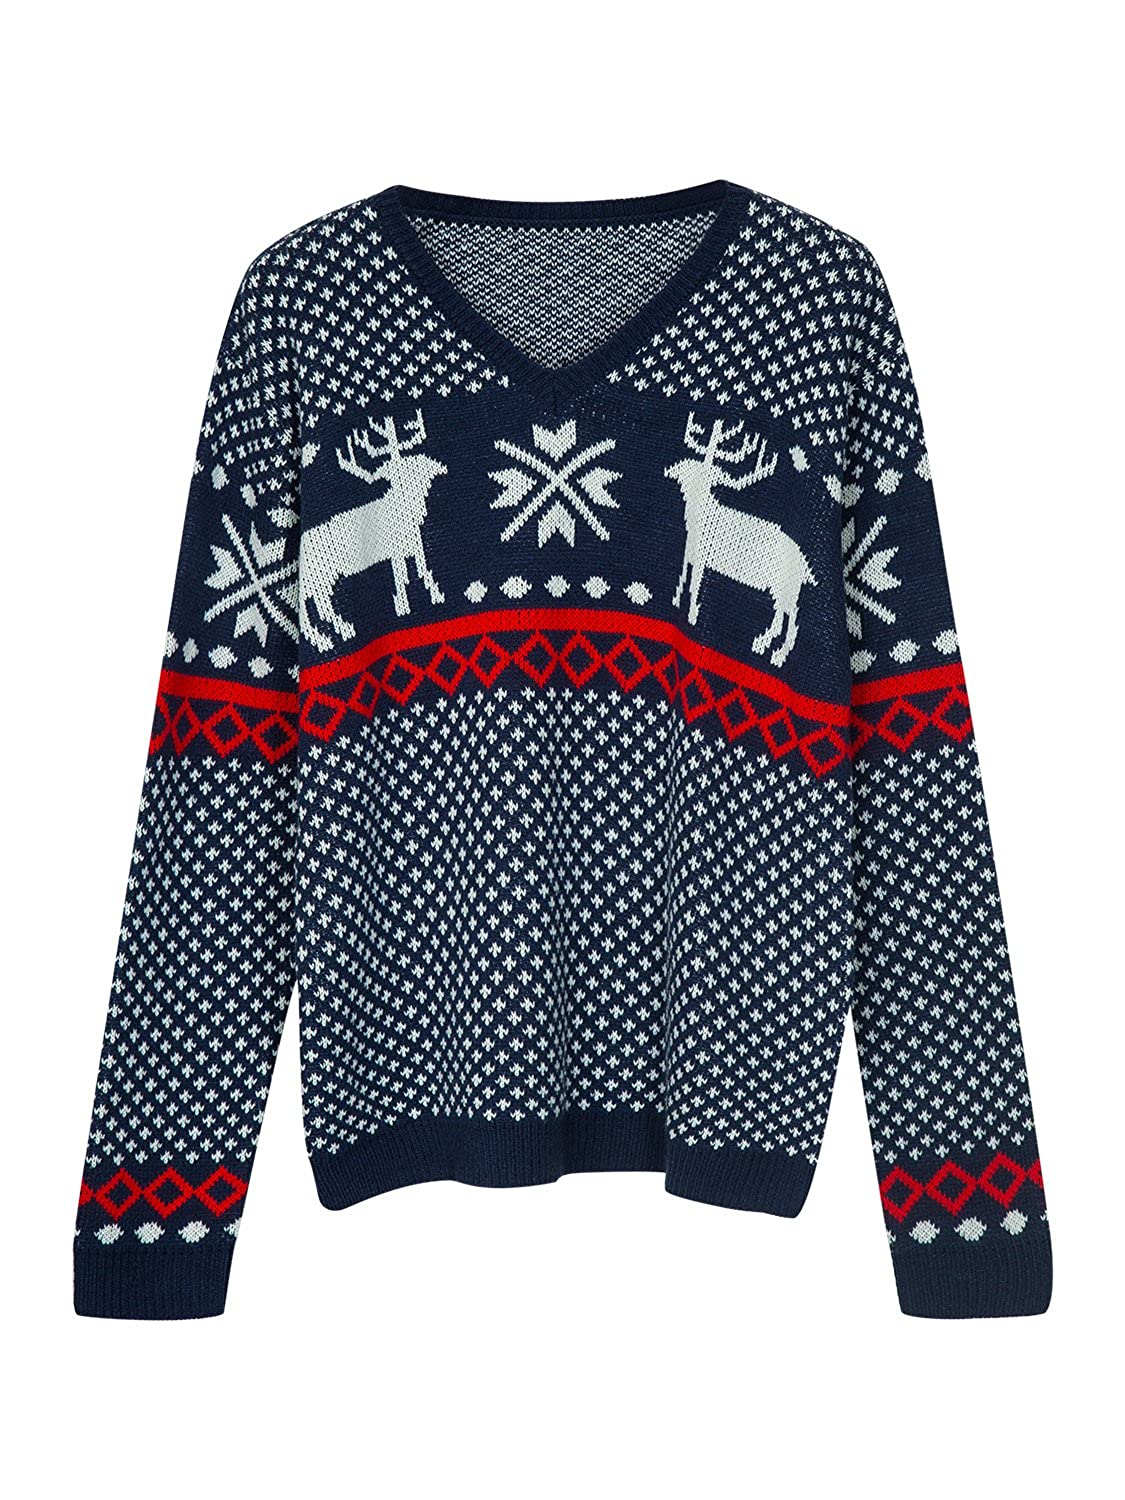 1940s Style Mens Shirts, Sweaters, Vests Choies Mens Ugly Christmas Sweater Fashion Christmas Sweater With Snowflake Pattern $29.99 AT vintagedancer.com